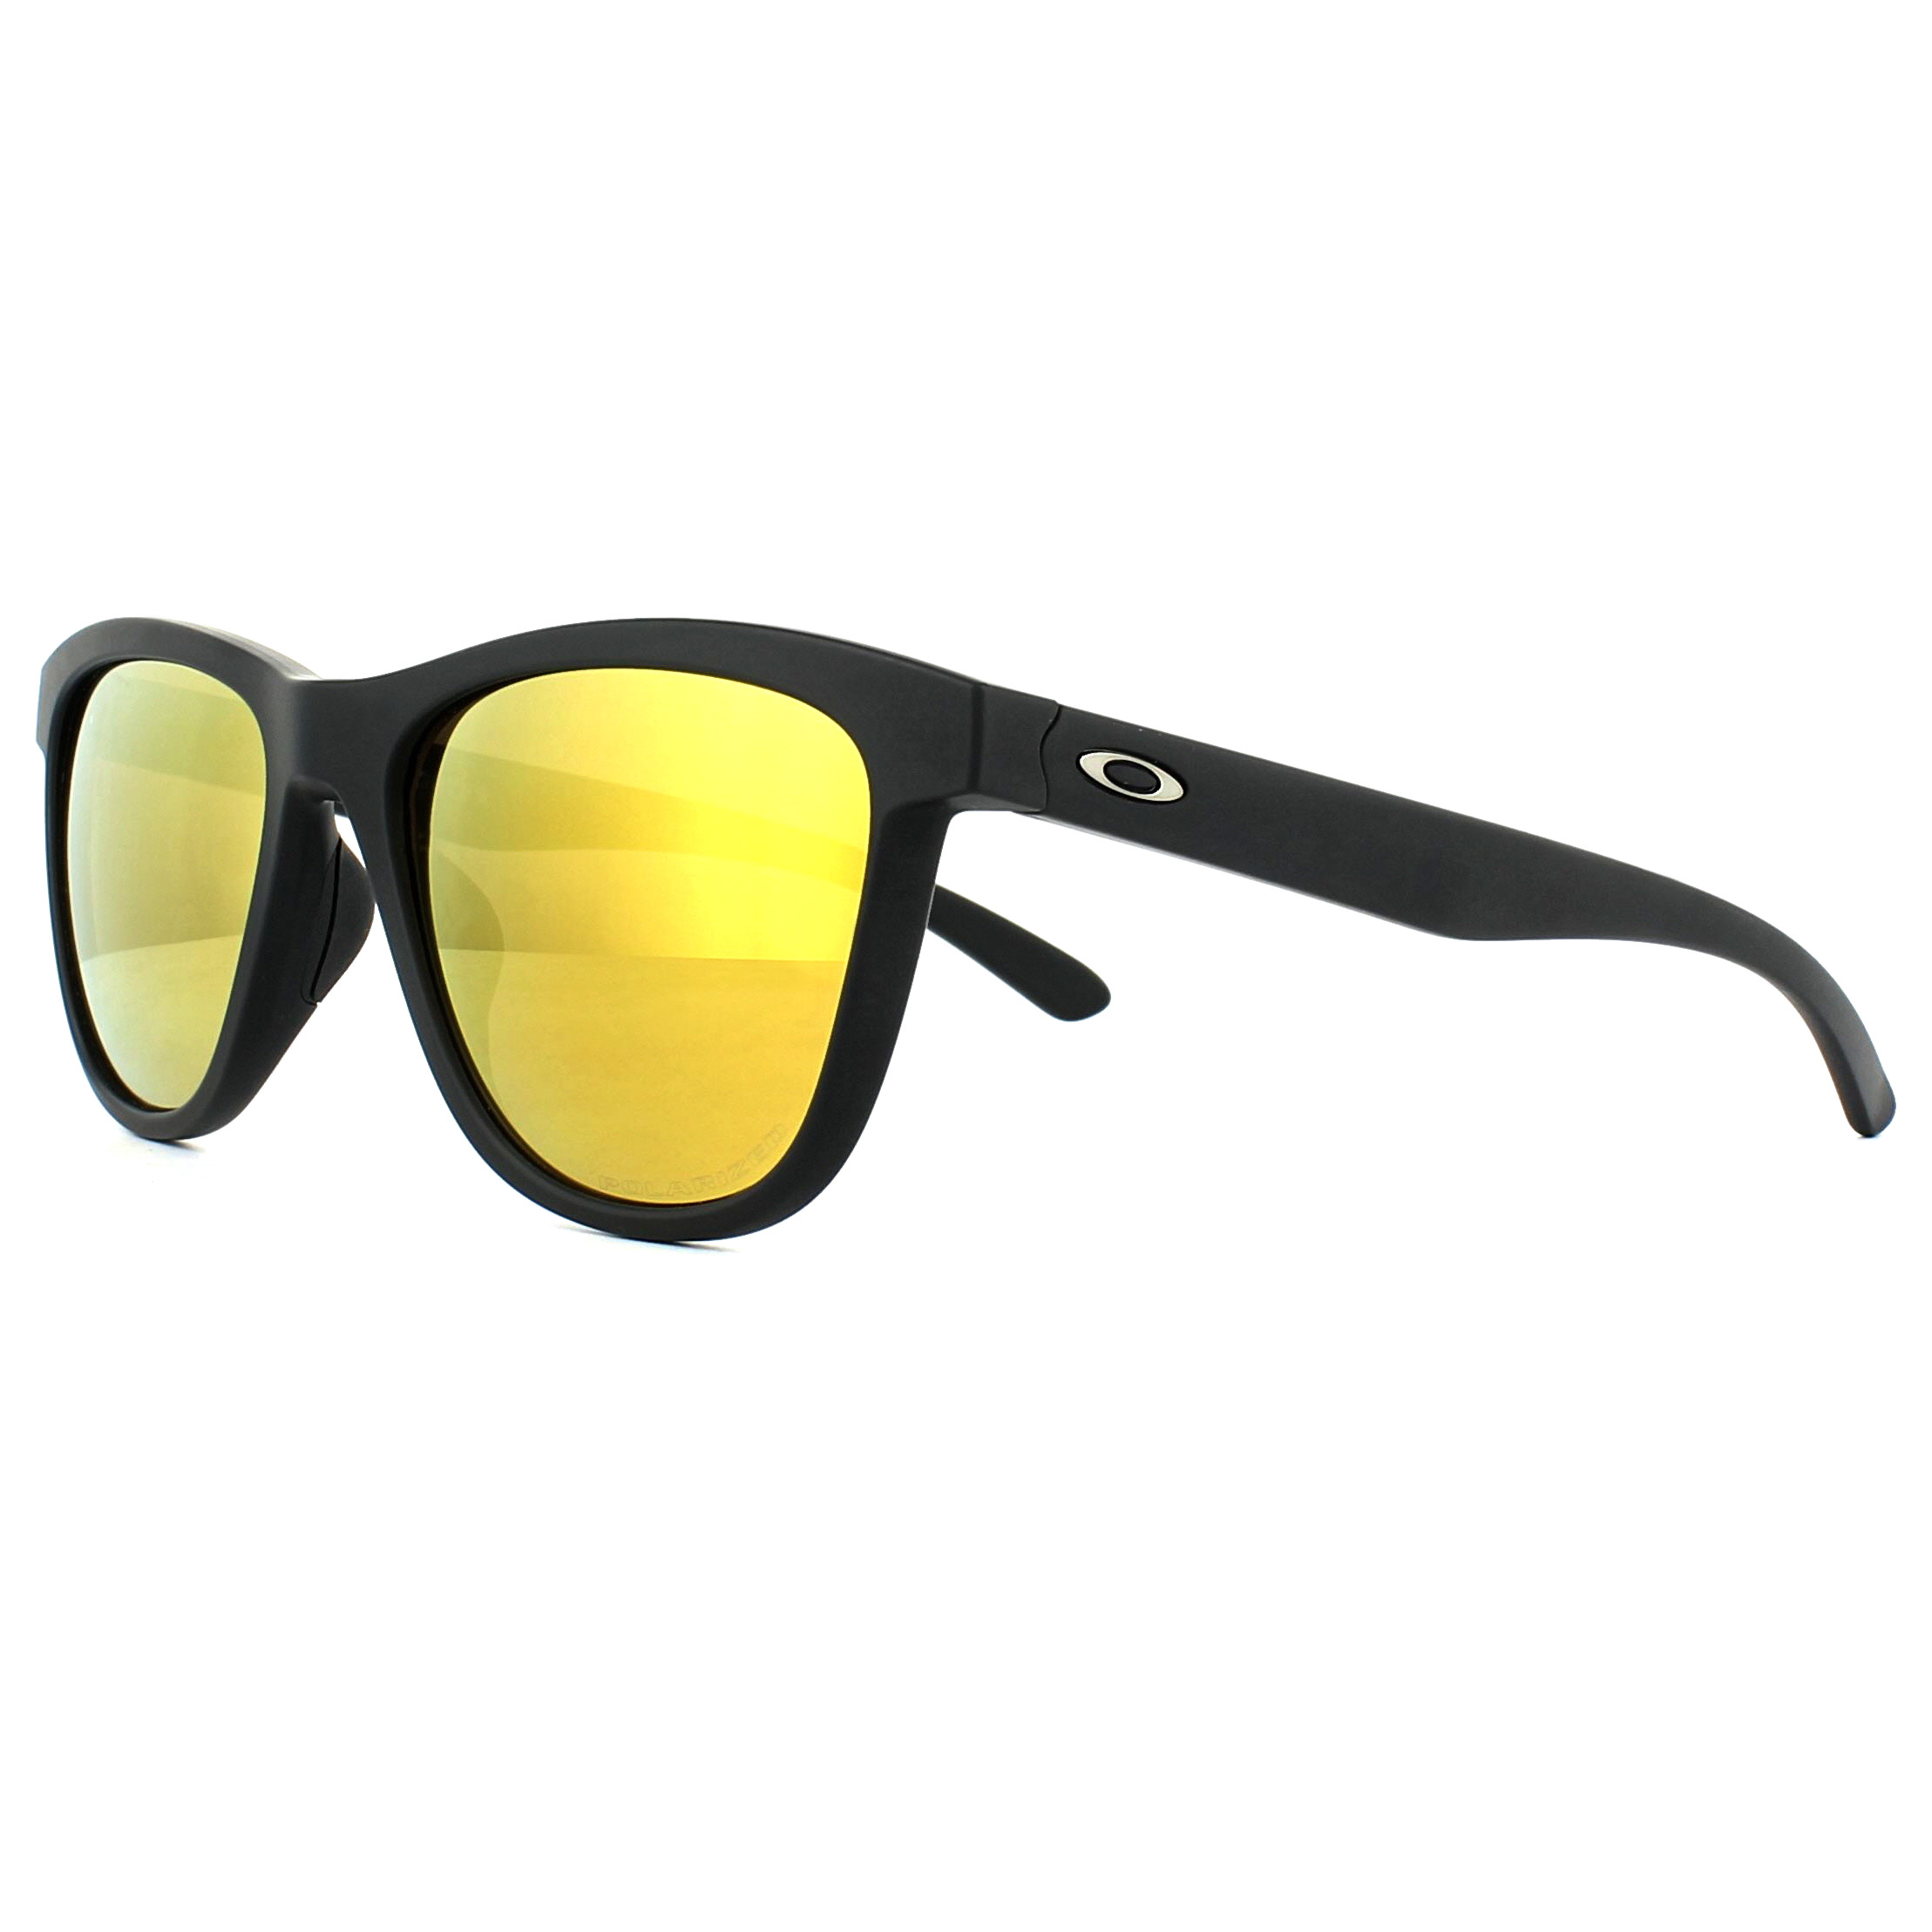 2a1c9e66ee Sentinel Oakley Sunglasses Moonlighter OO9320-10 Matt Black 24k Iridium  Polarized